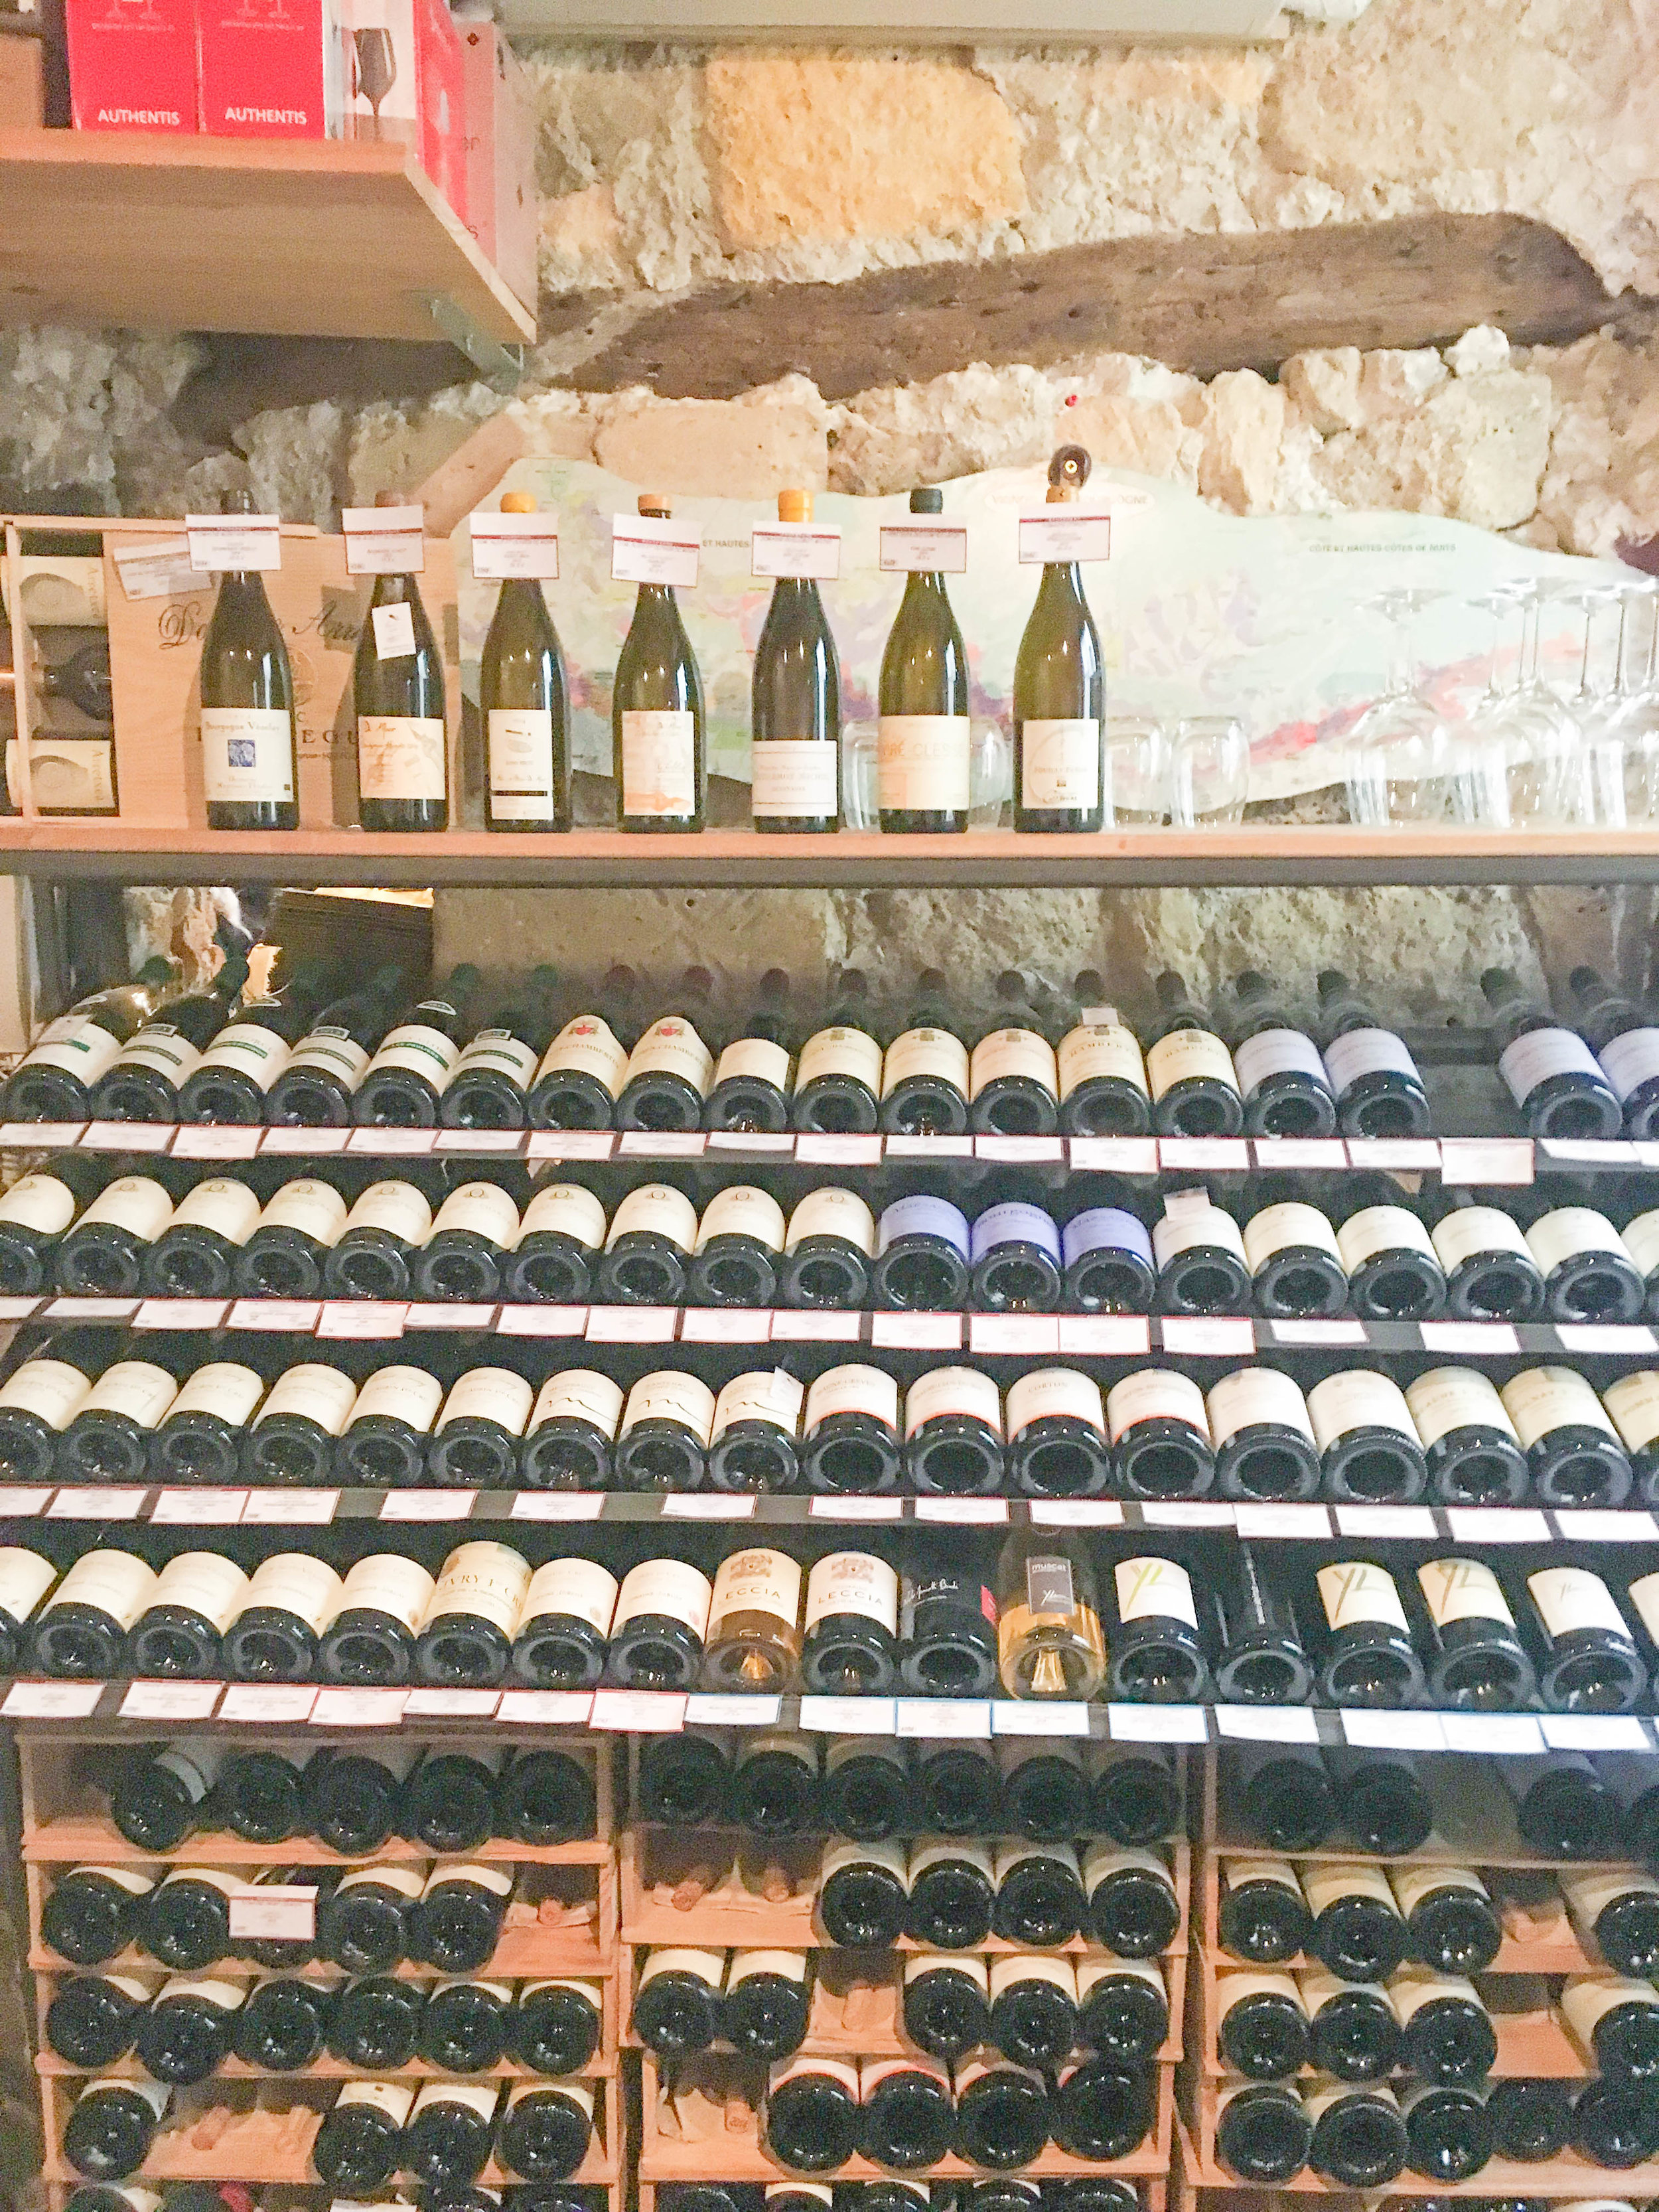 Wines at La Derniere Goutte in Paris